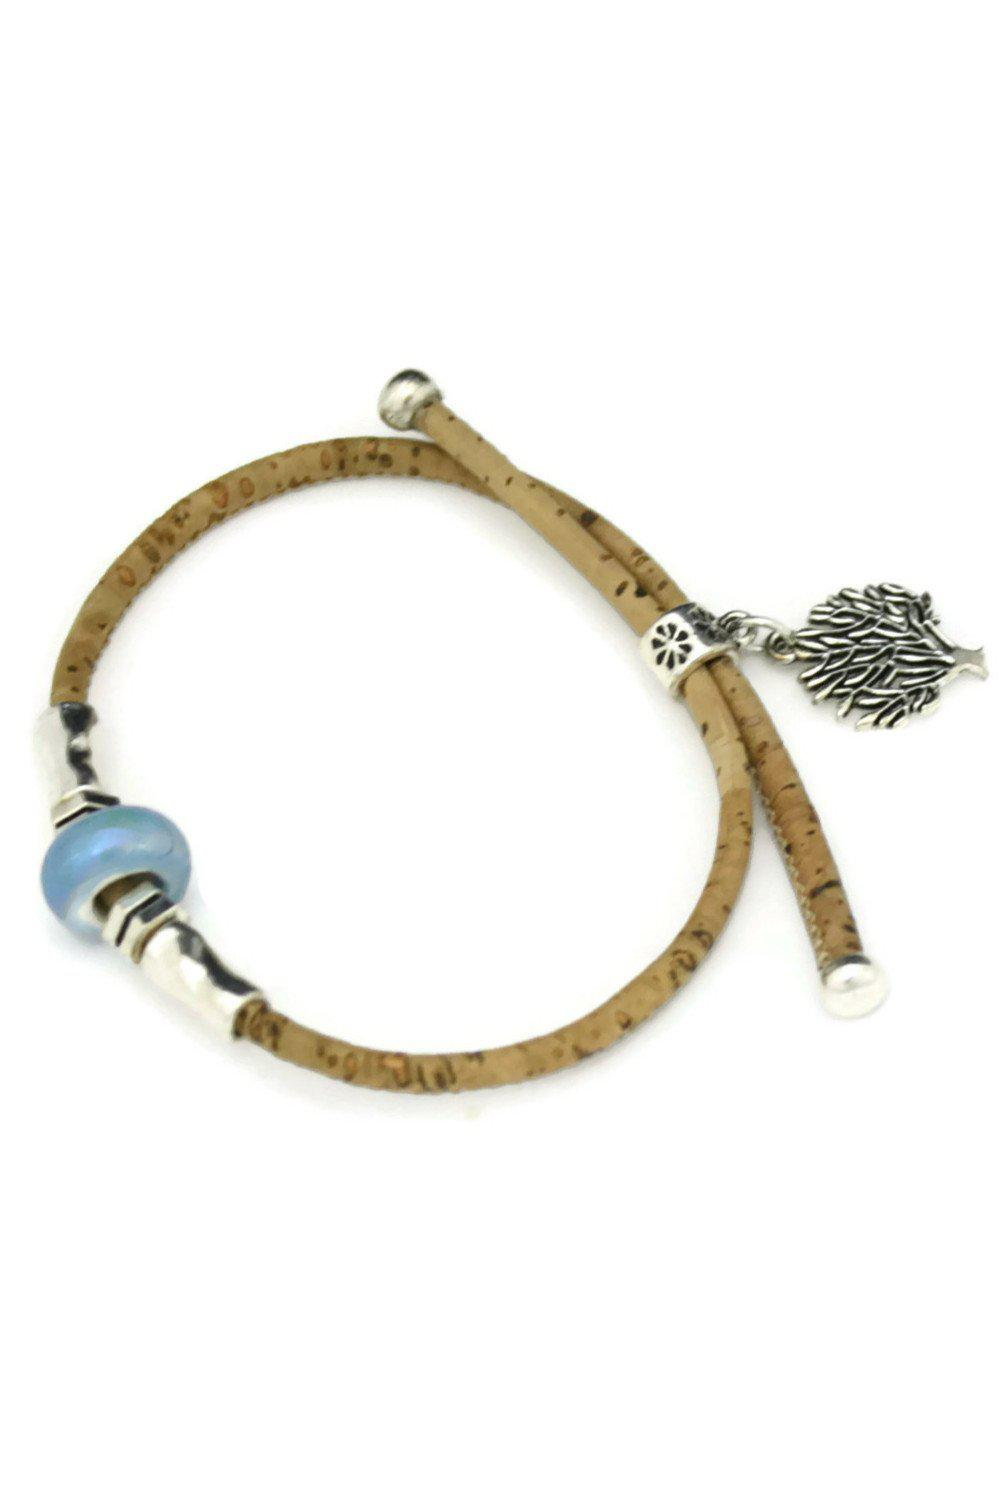 Arbor Blue Cork Essential Oil Diffuser Bracelet- Adjustable-Diffuser Bracelet-Destination Oils